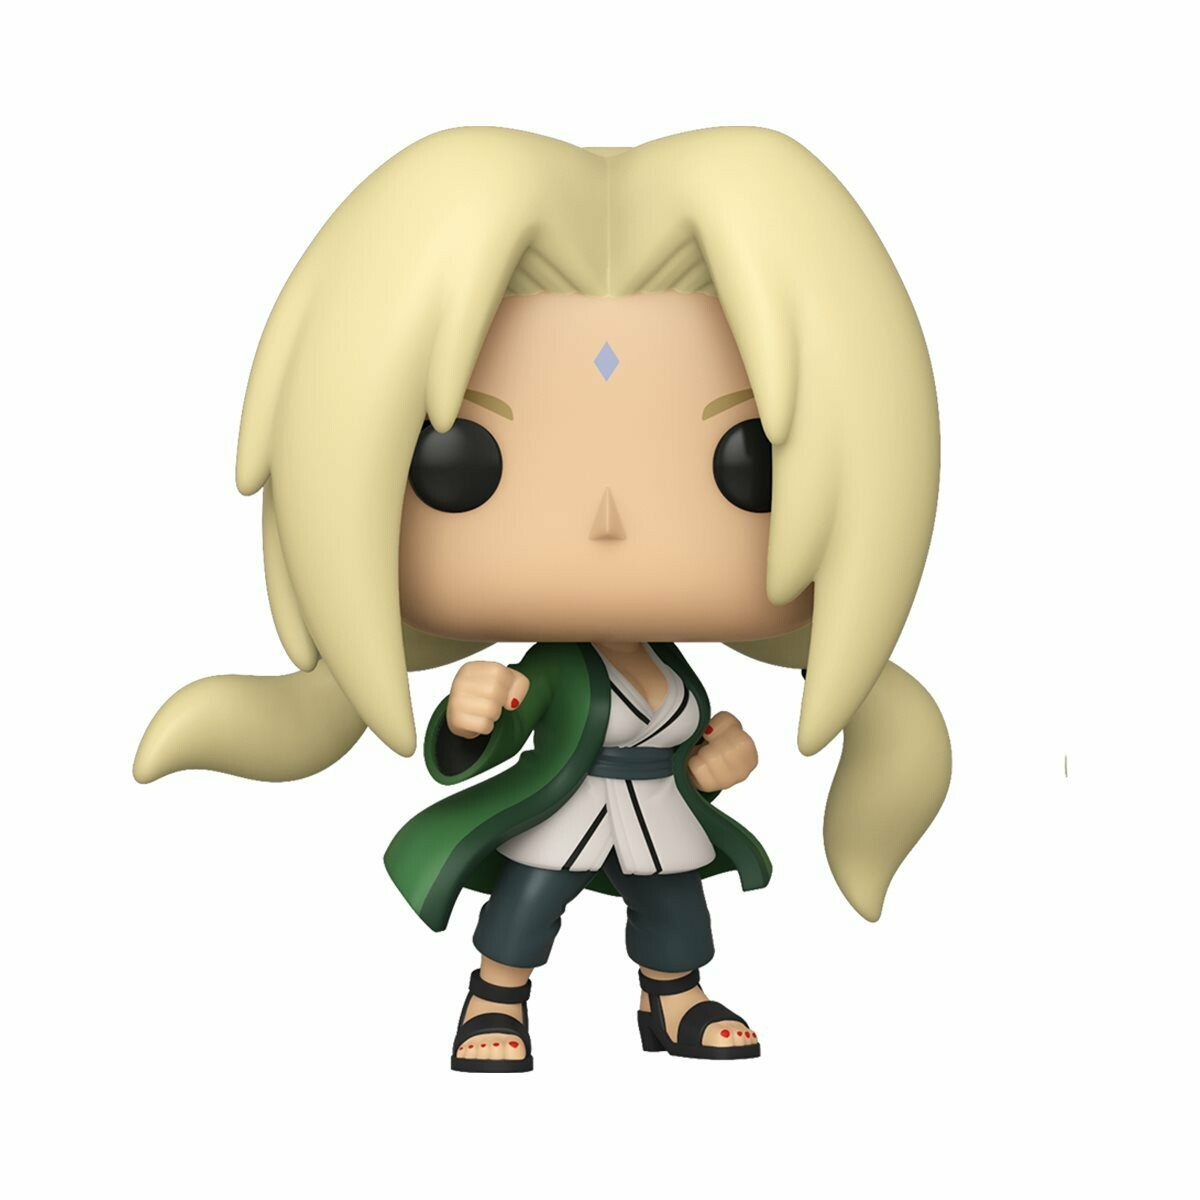 Naruto Lady Tsunade Pop! Vinyl Figure (2nd Batch)